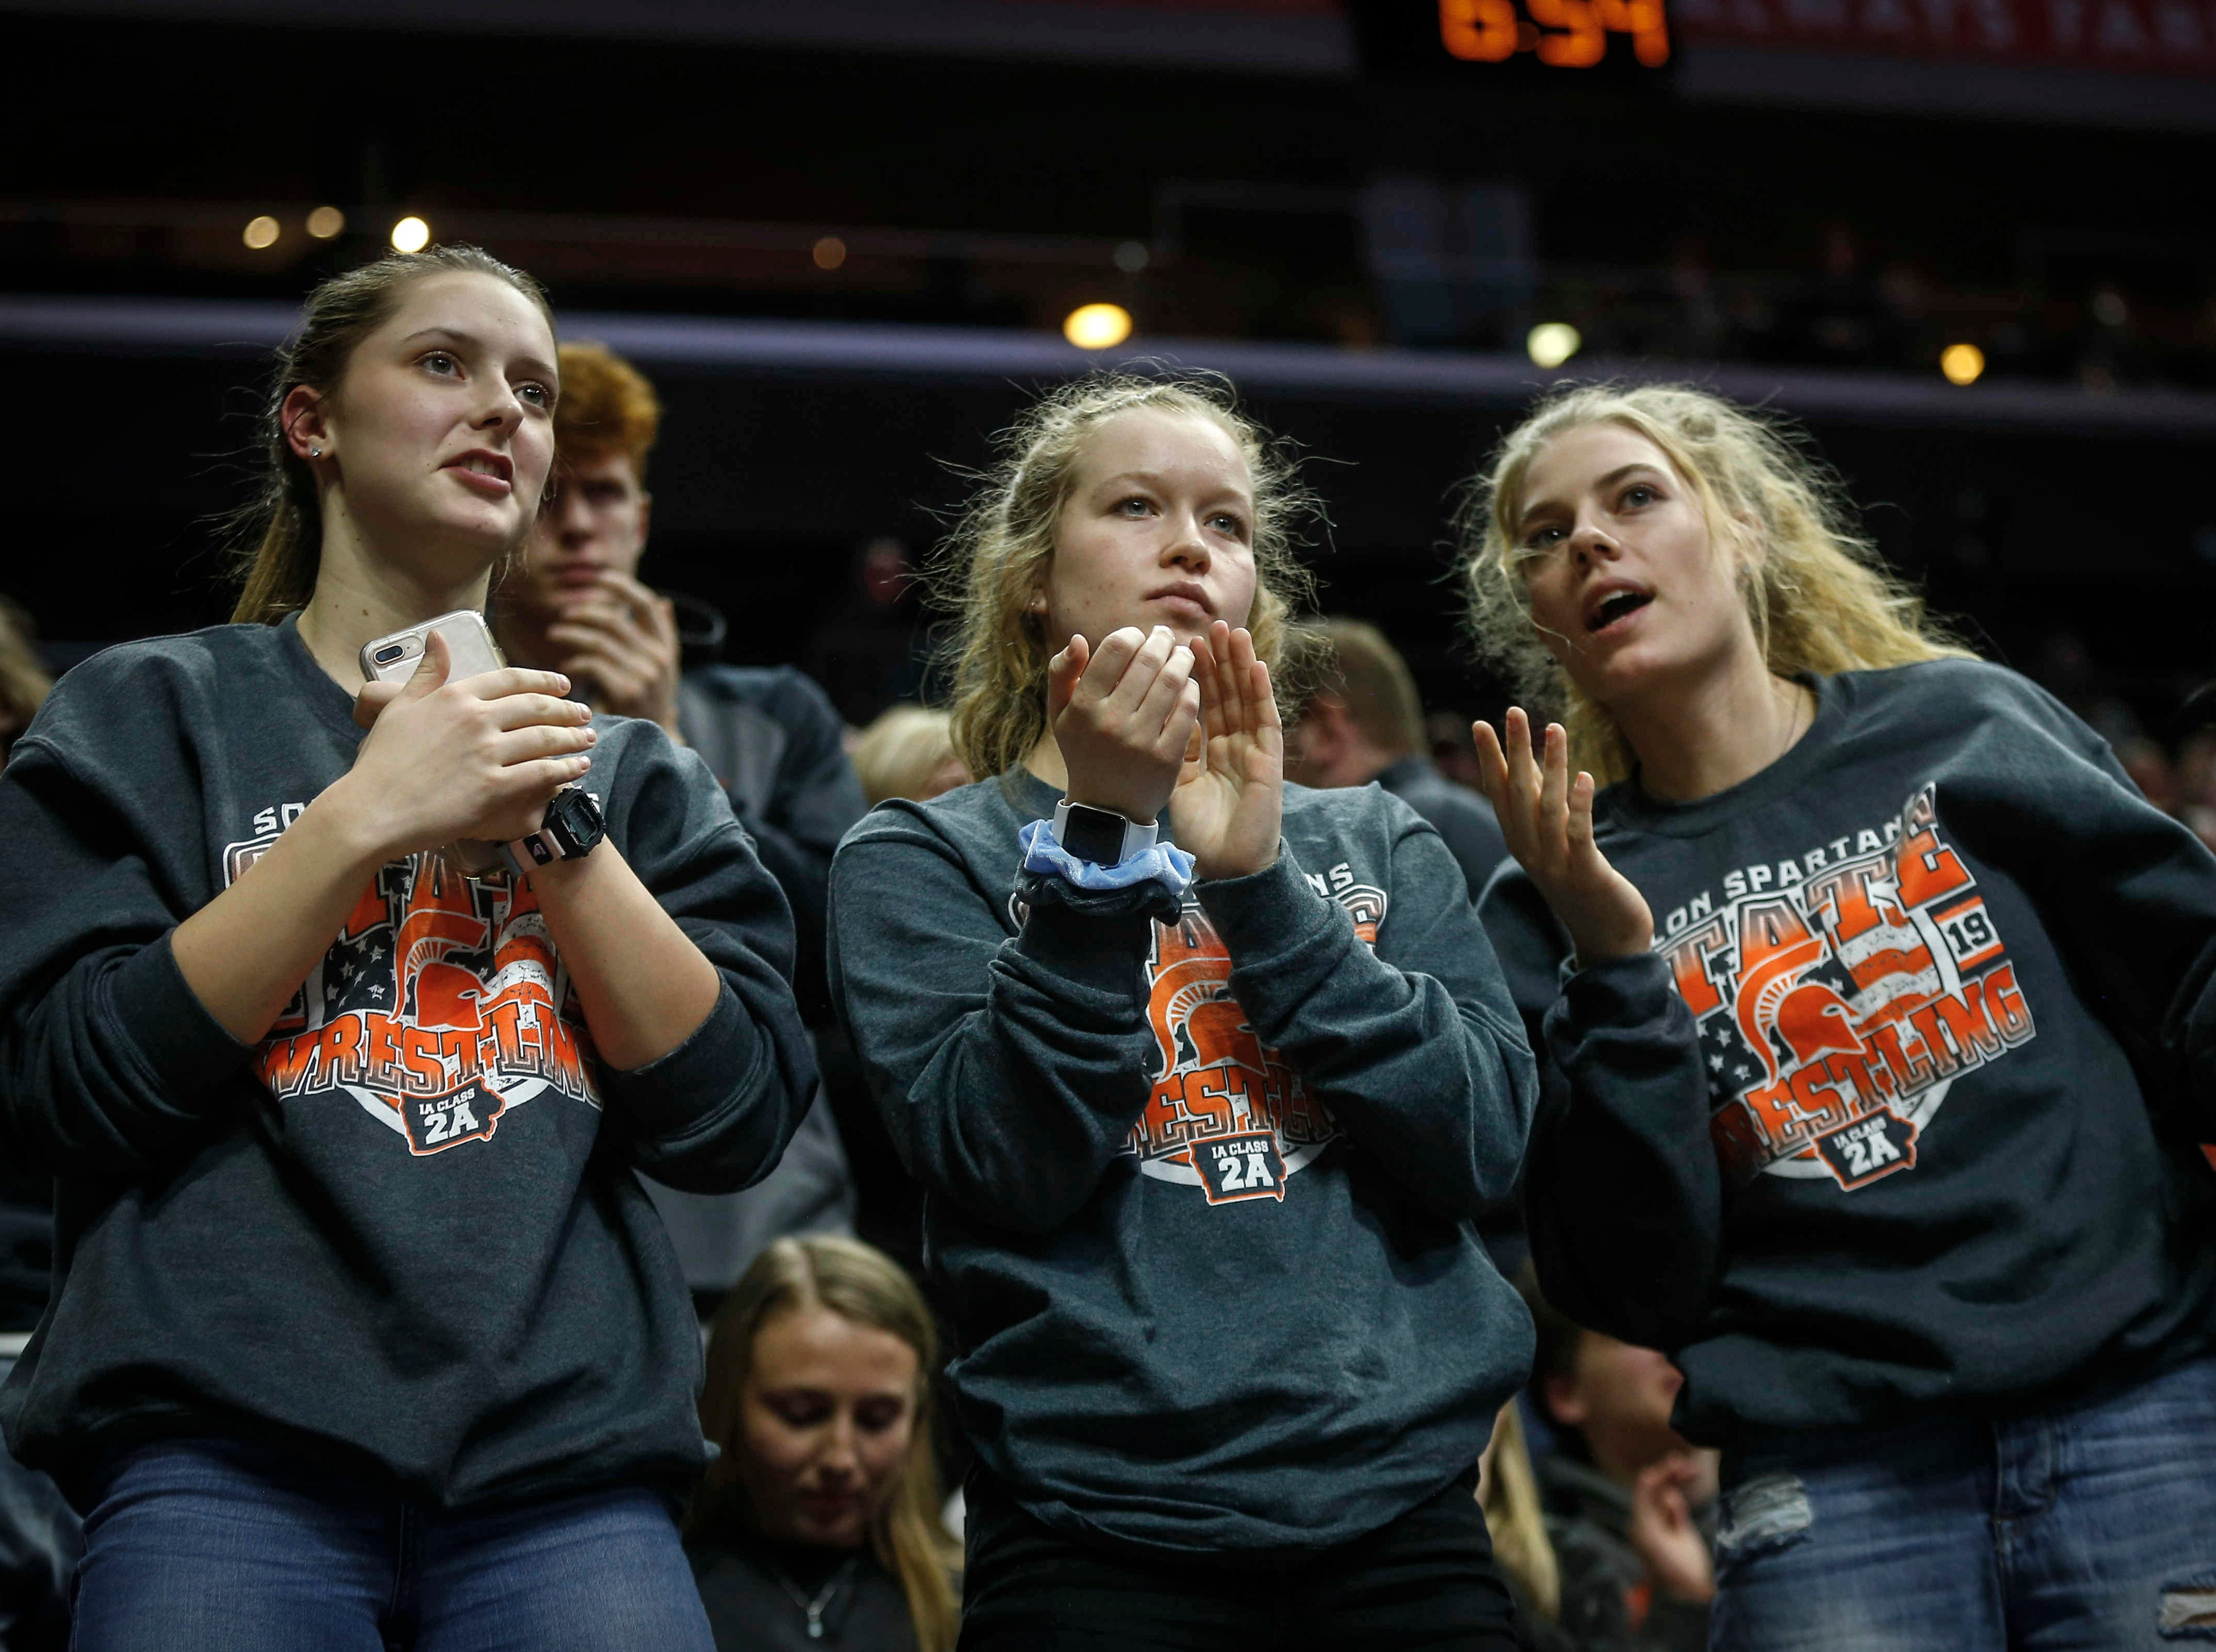 Solon fans cheer during the 2019 Iowa high school dual wrestling state tournament on Wednesday, Feb. 13, 2019, at Wells Fargo Arena in Des Moines.